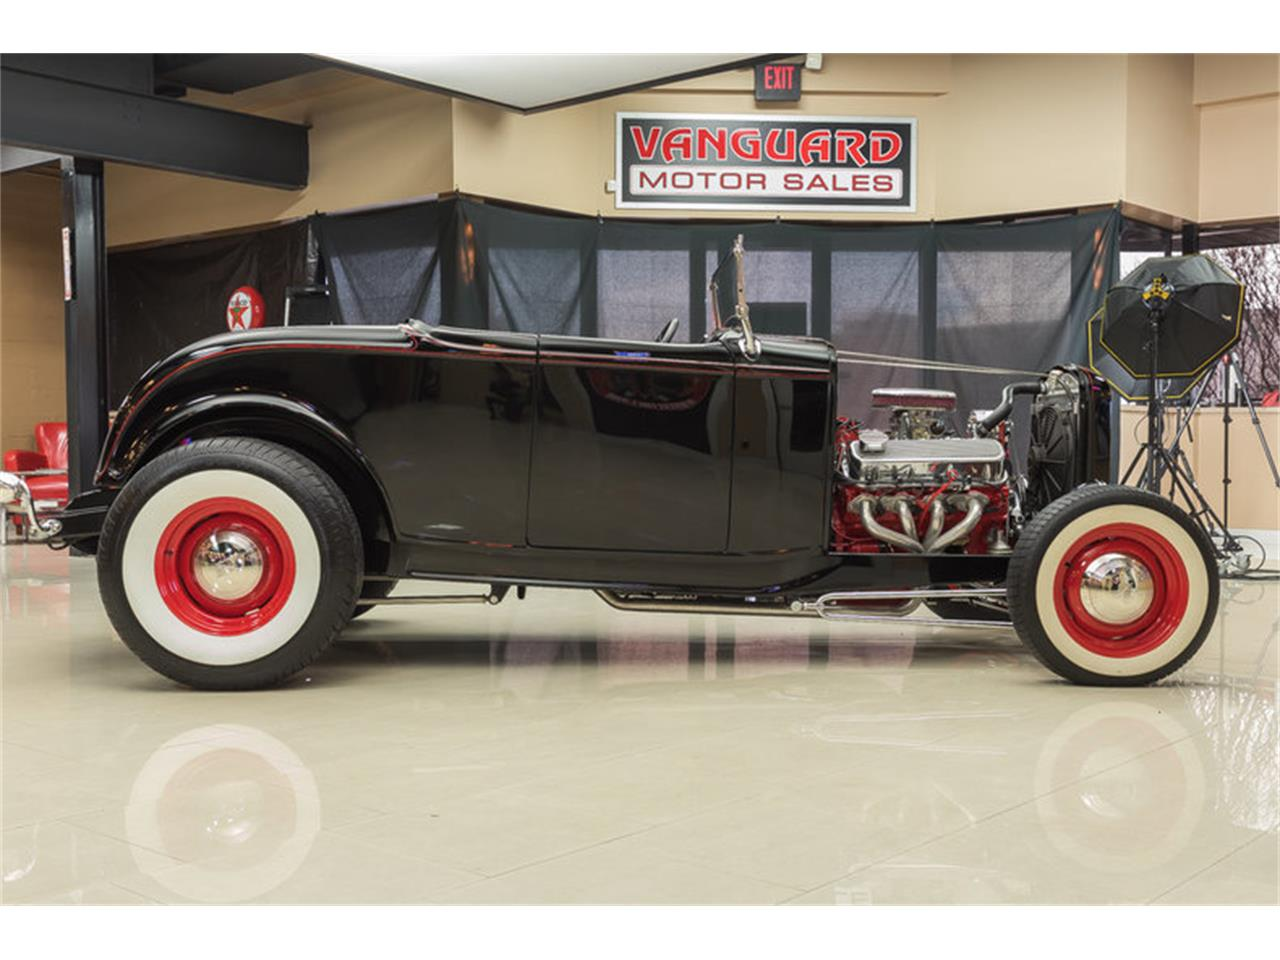 32 Highboy Ford 5 0 Engine Diagram Wiring Sample 1930 Model A 1932 Roadster Street Rod For Sale Classiccars Com Cc 969550